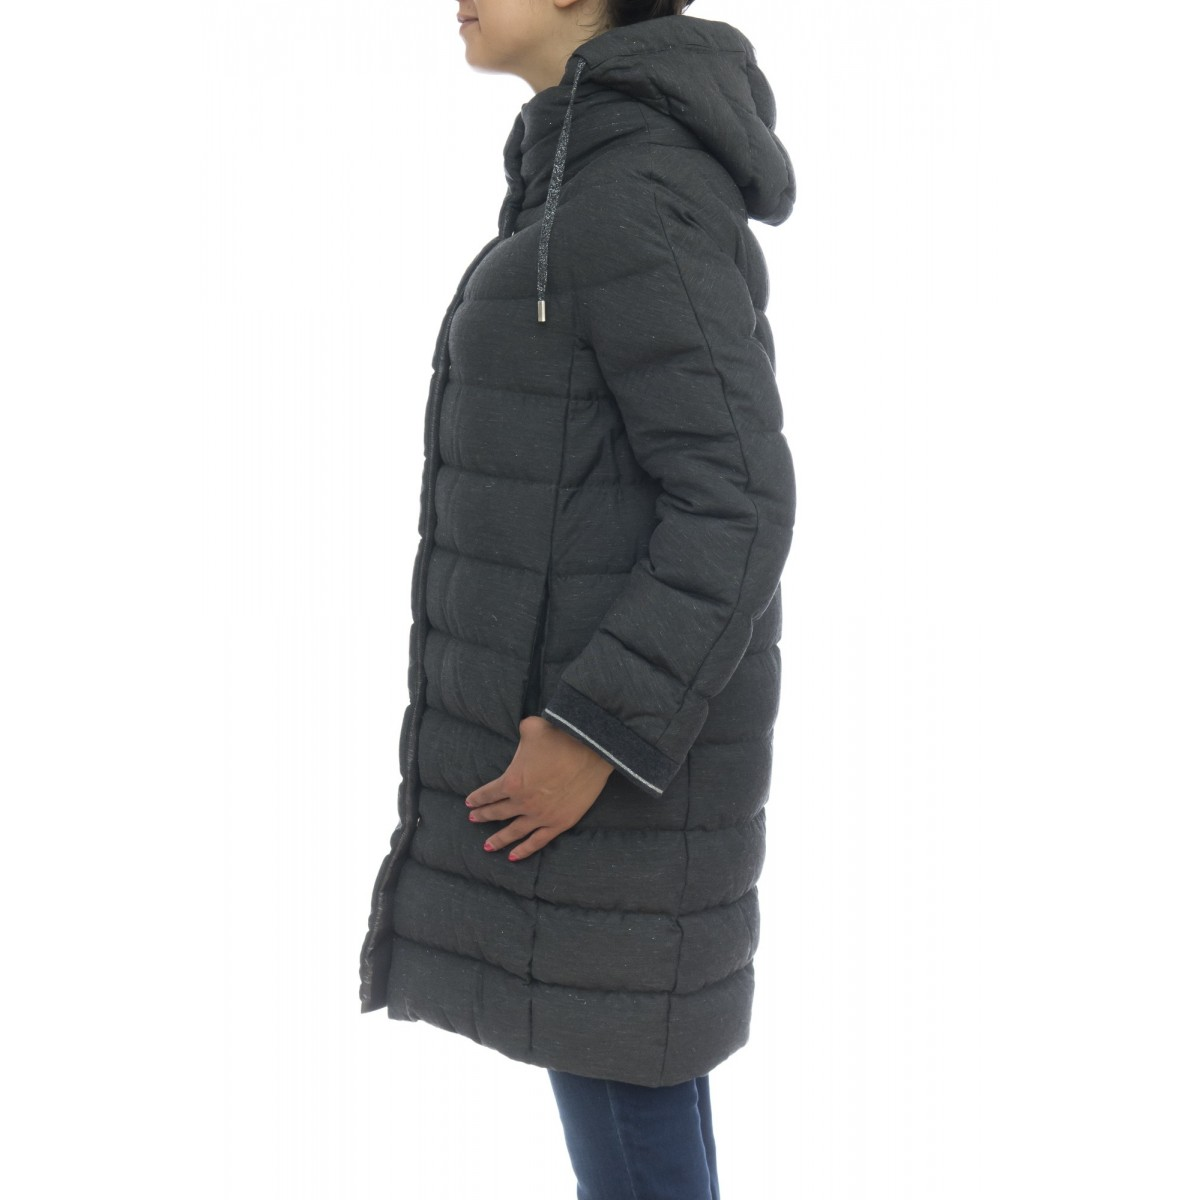 Down jacket Woman- Pi010dr 12330 resort  melange lurex